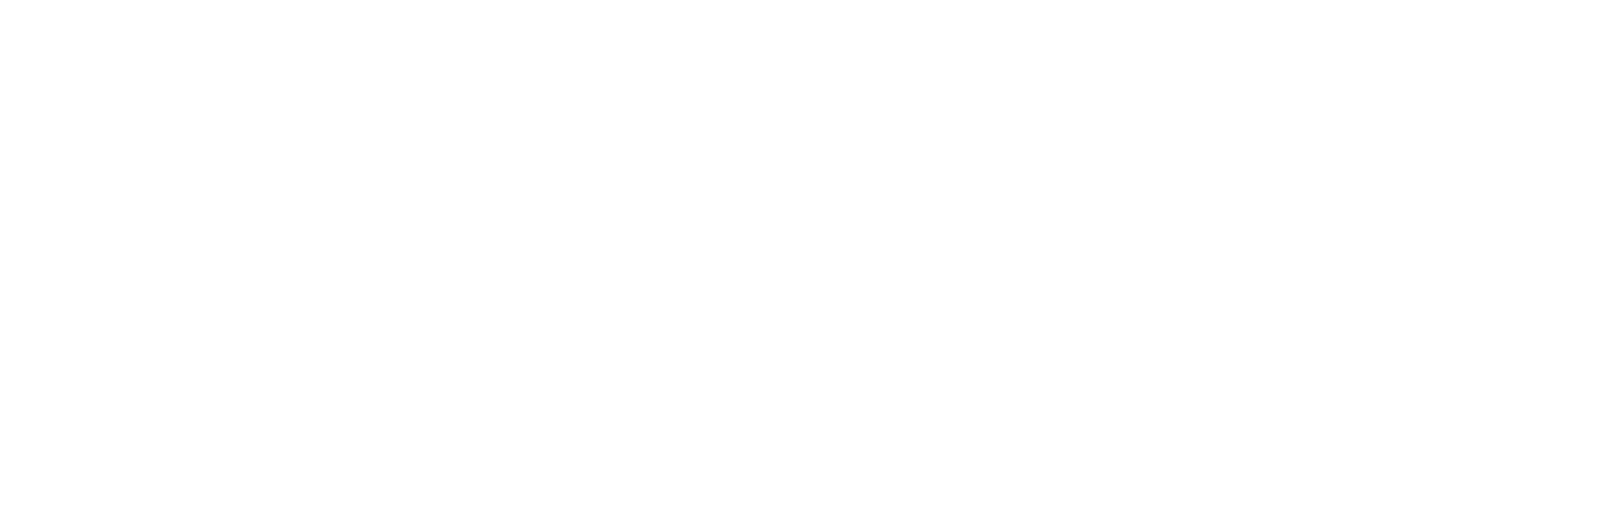 Arteric named MM&M Top 100 agency; 15 design awards in 2018; Veeva CLM Agency Certified, Veeva approved email agency certified